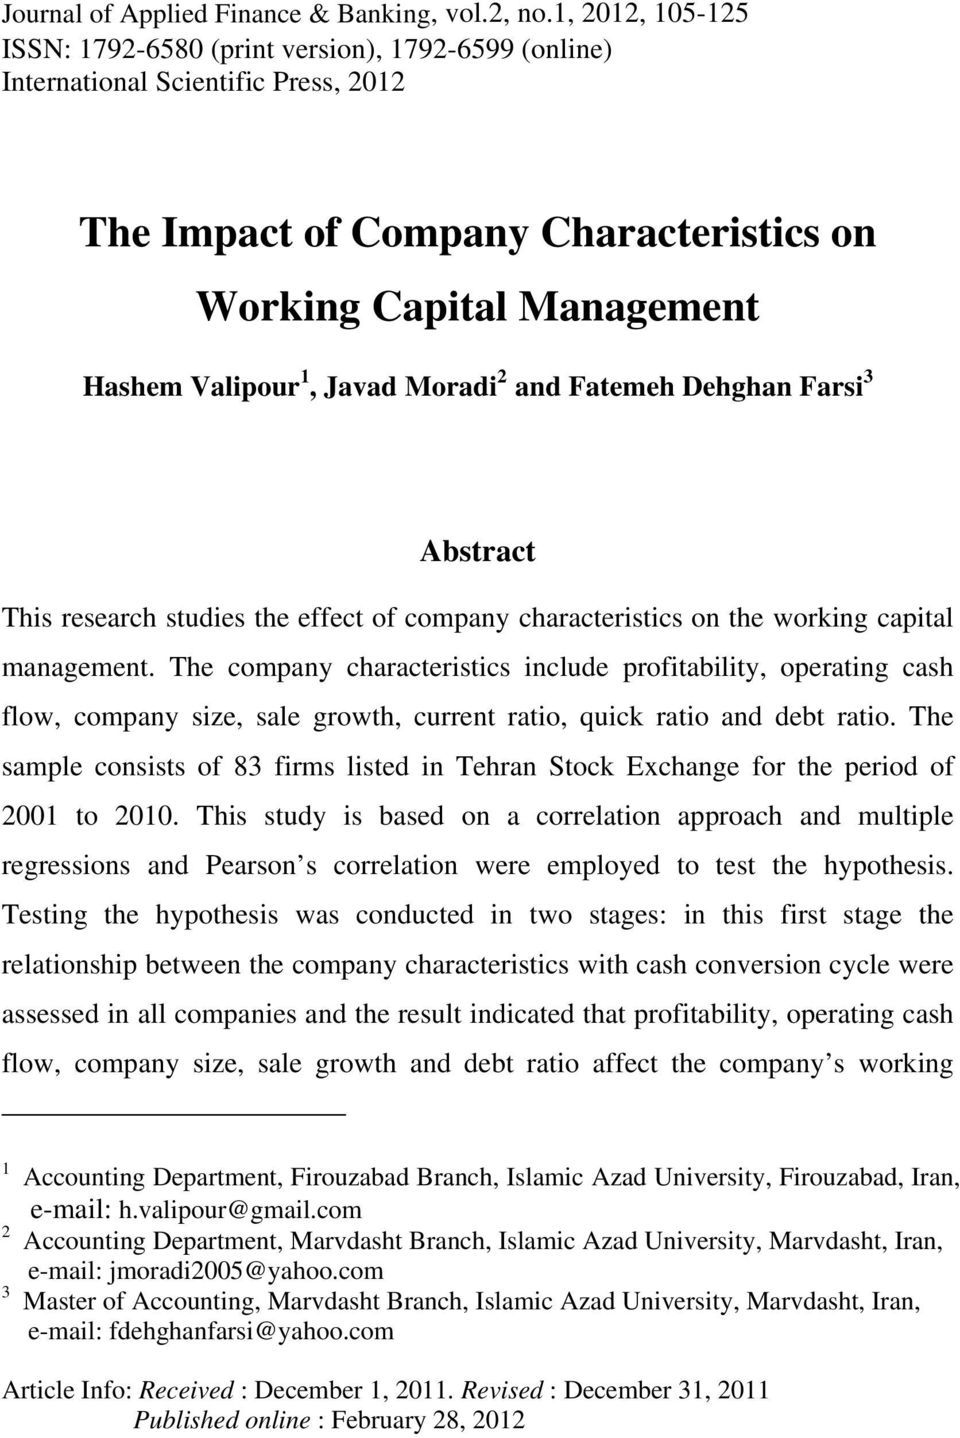 Moradi 2 and Fatemeh Dehghan Farsi 3 Abstract This research studies the effect of company characteristics on the working capital management.